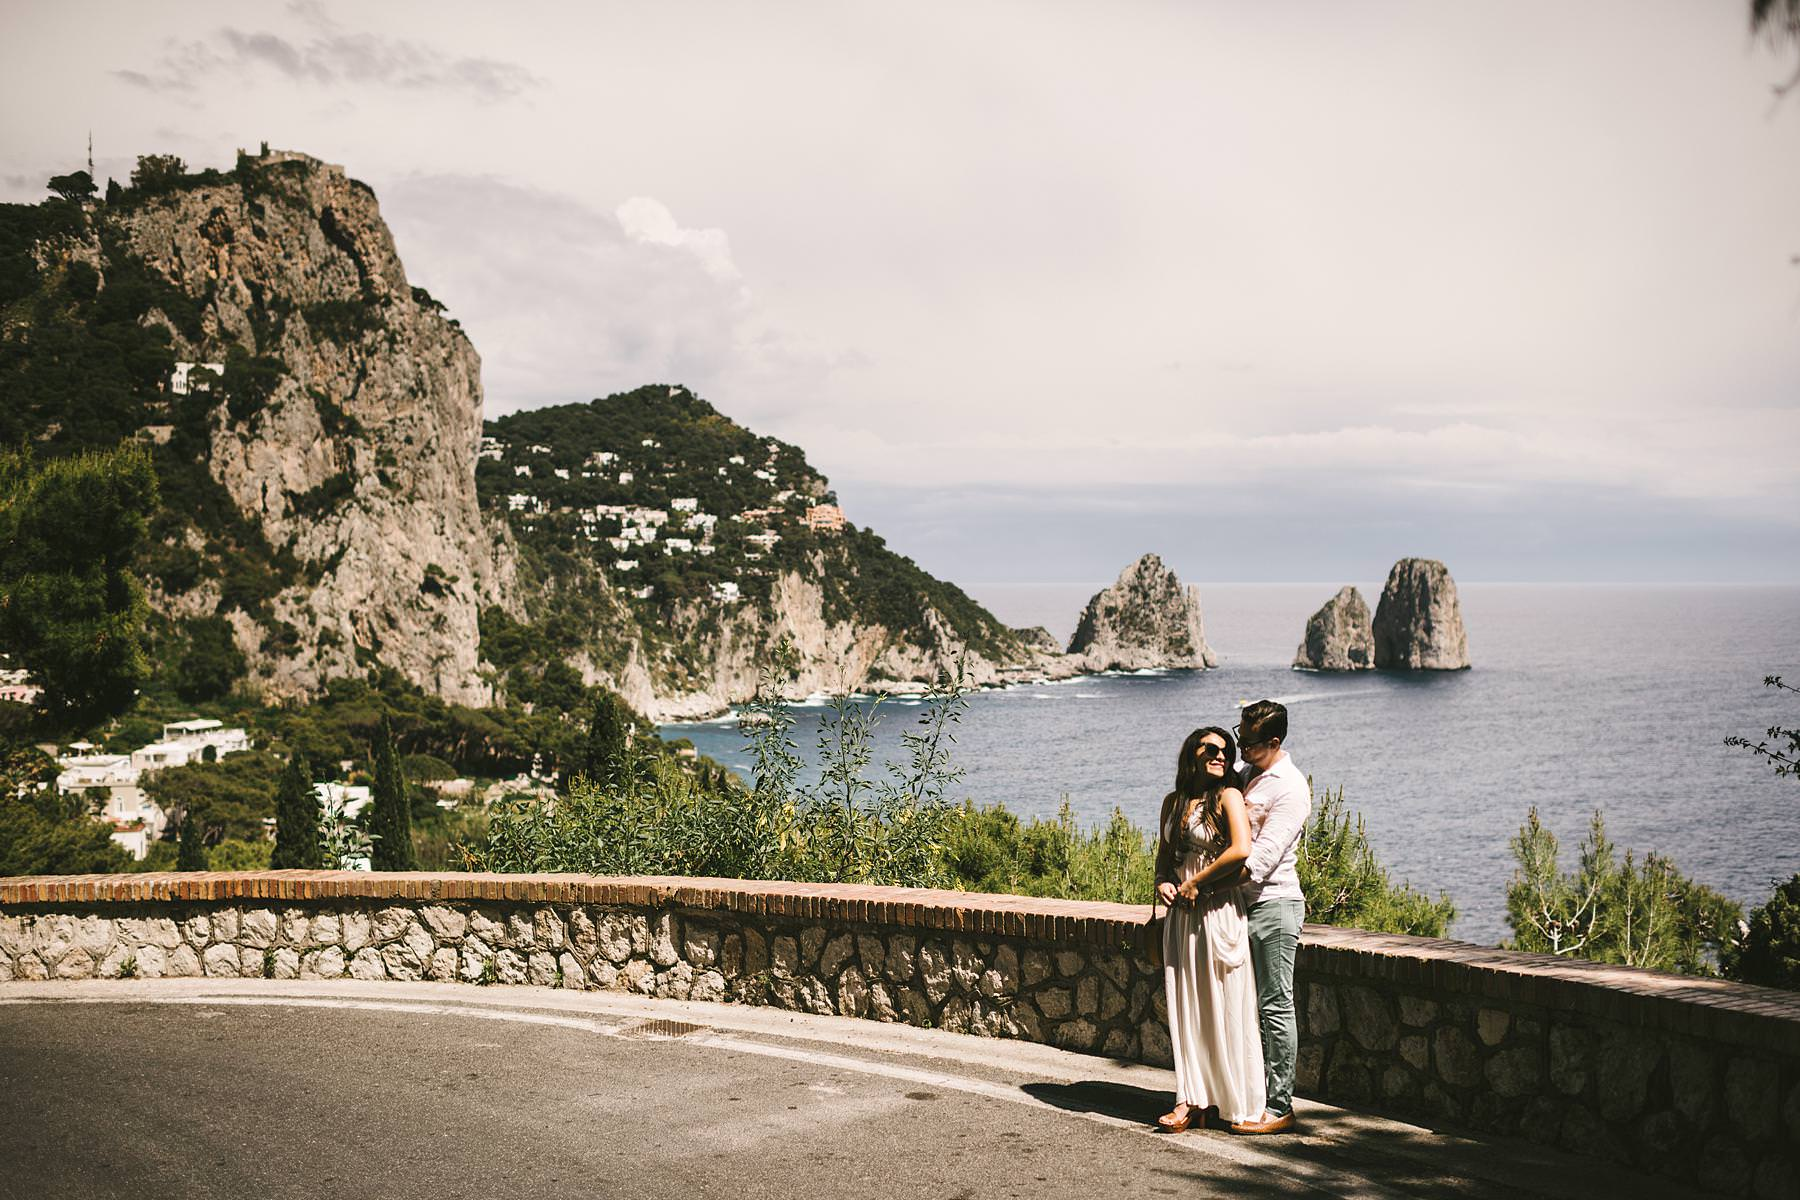 Couple portrait engagement pre-wedding photo session in a scenic road with breathtaking sea stacks of Capri island